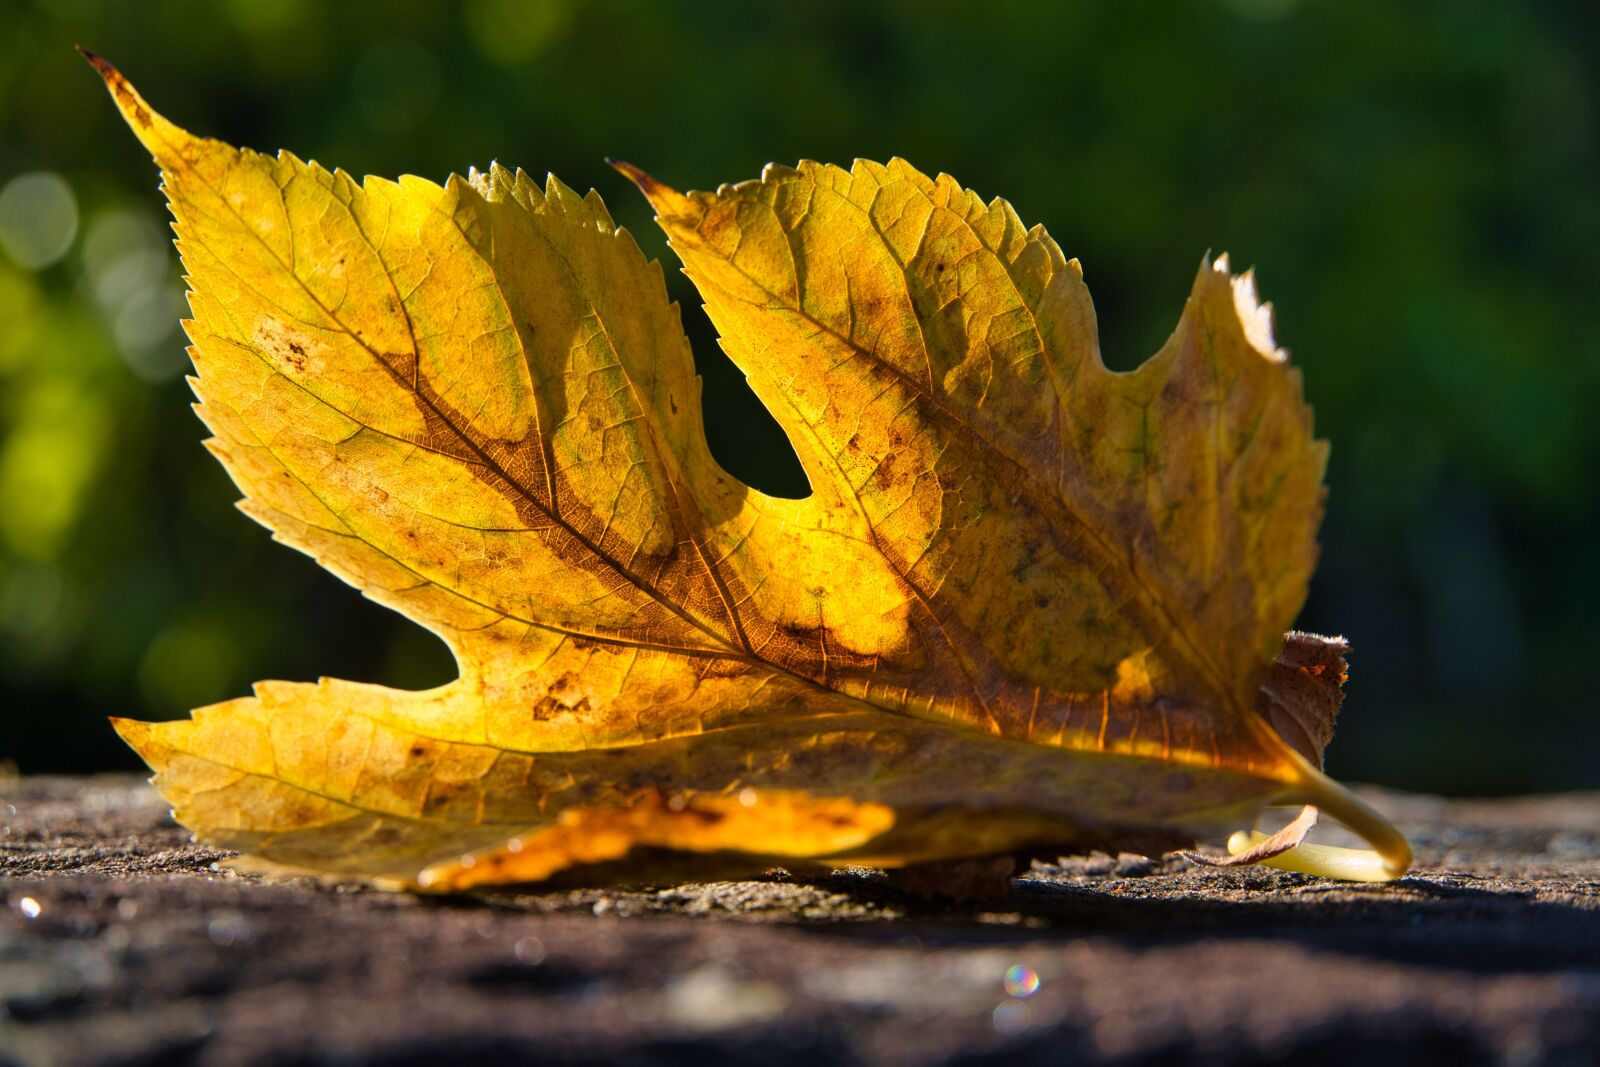 """Sony a6400 sample photo. """"Nature, leaf, maple"""" photography"""